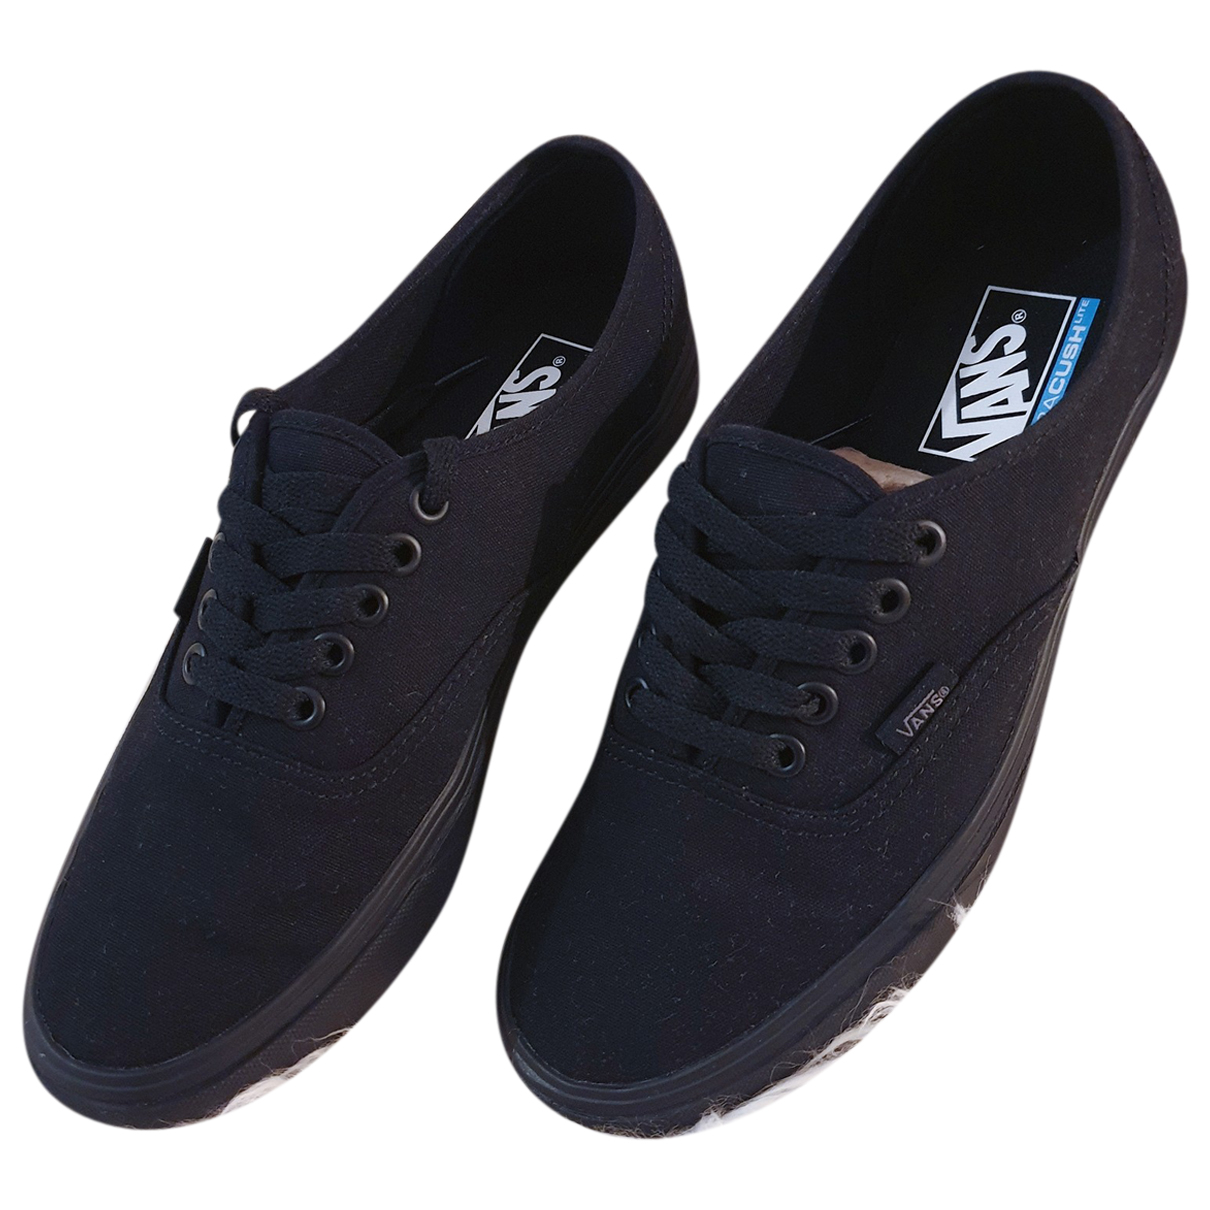 Vans N Black Cloth Trainers for Women 40 EU